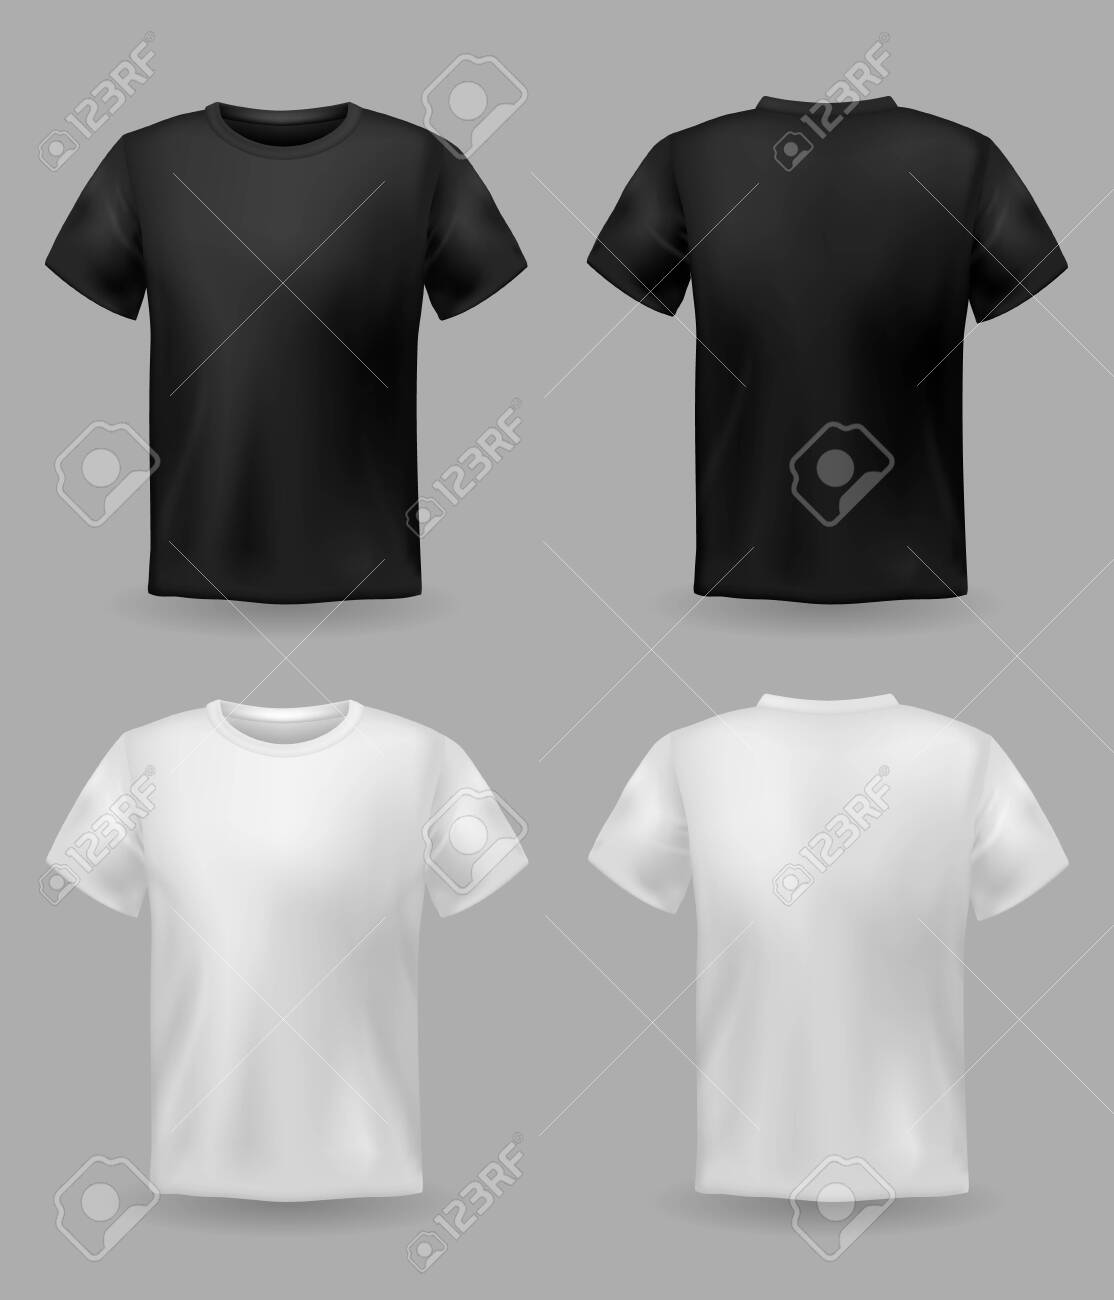 White and black t-shirt mockup. Sport blank shirt template front and back view, men and women clothes for fashion clothing realistic uniform for advertising textile print vector set - 129993043